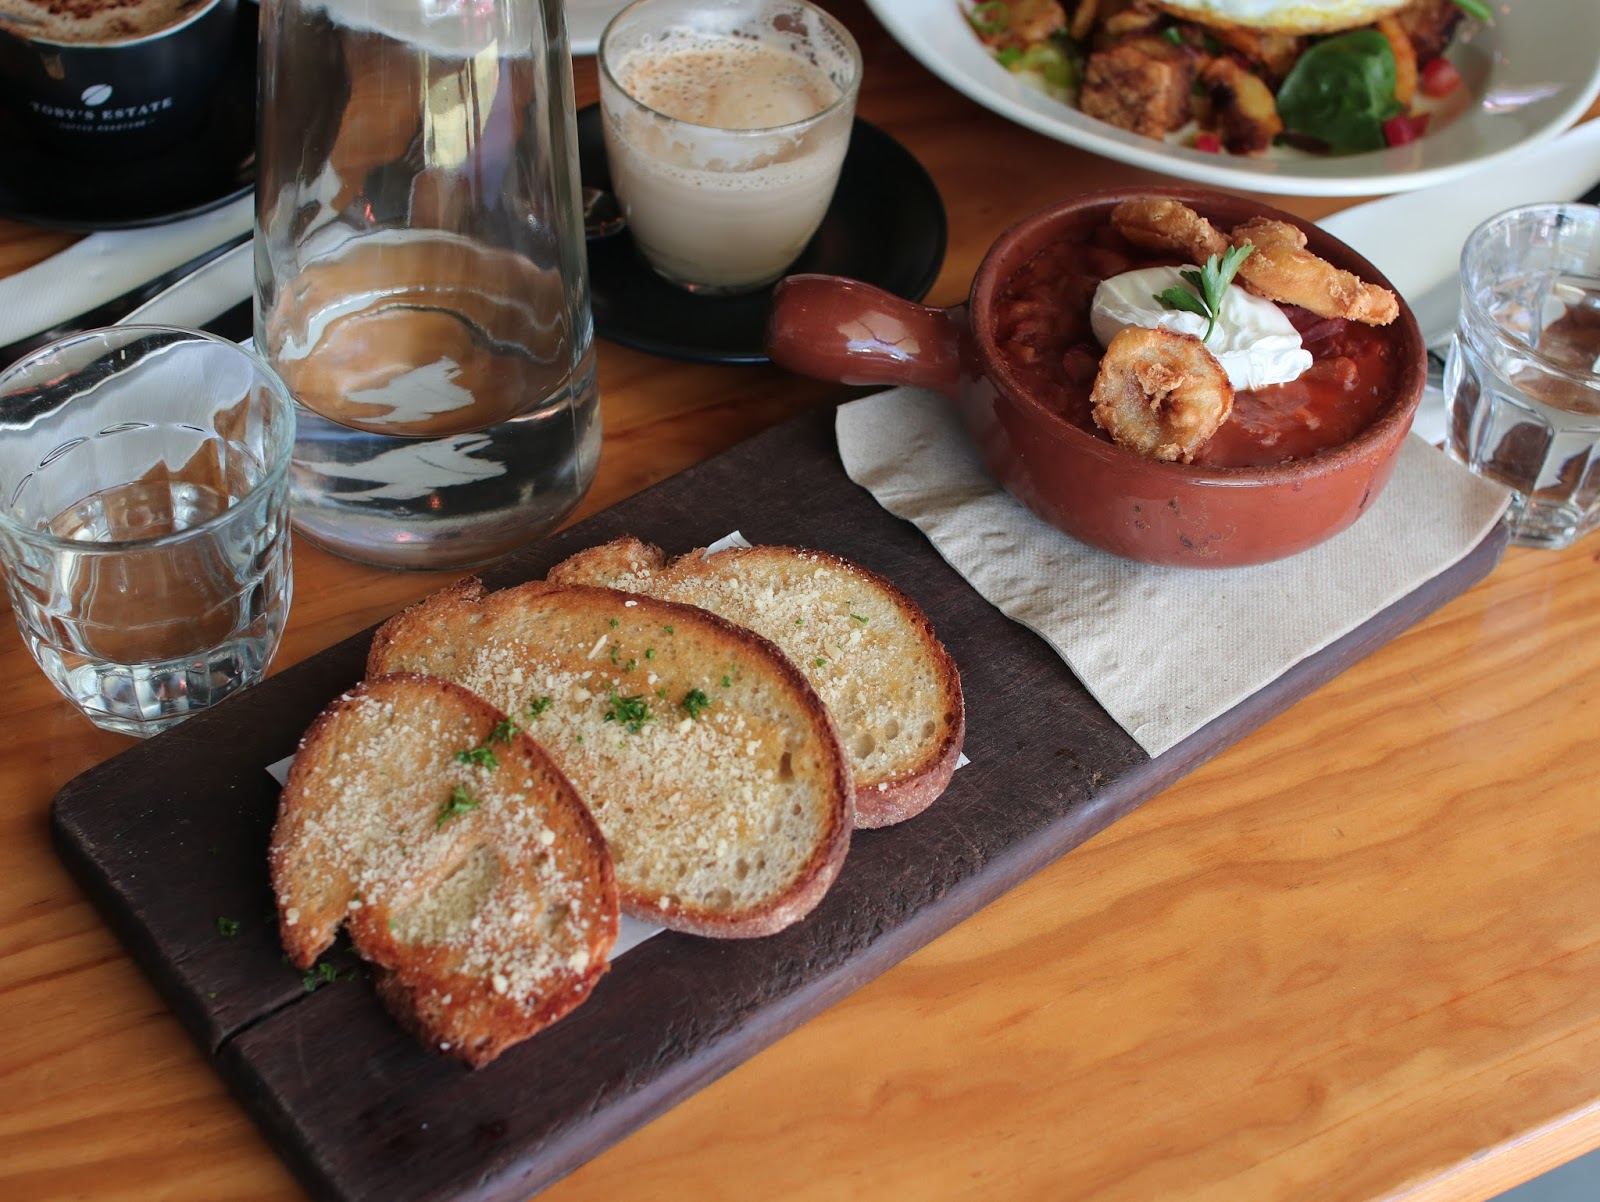 The tuck shop cafe, perth, cafes, cafe hopping, brunch